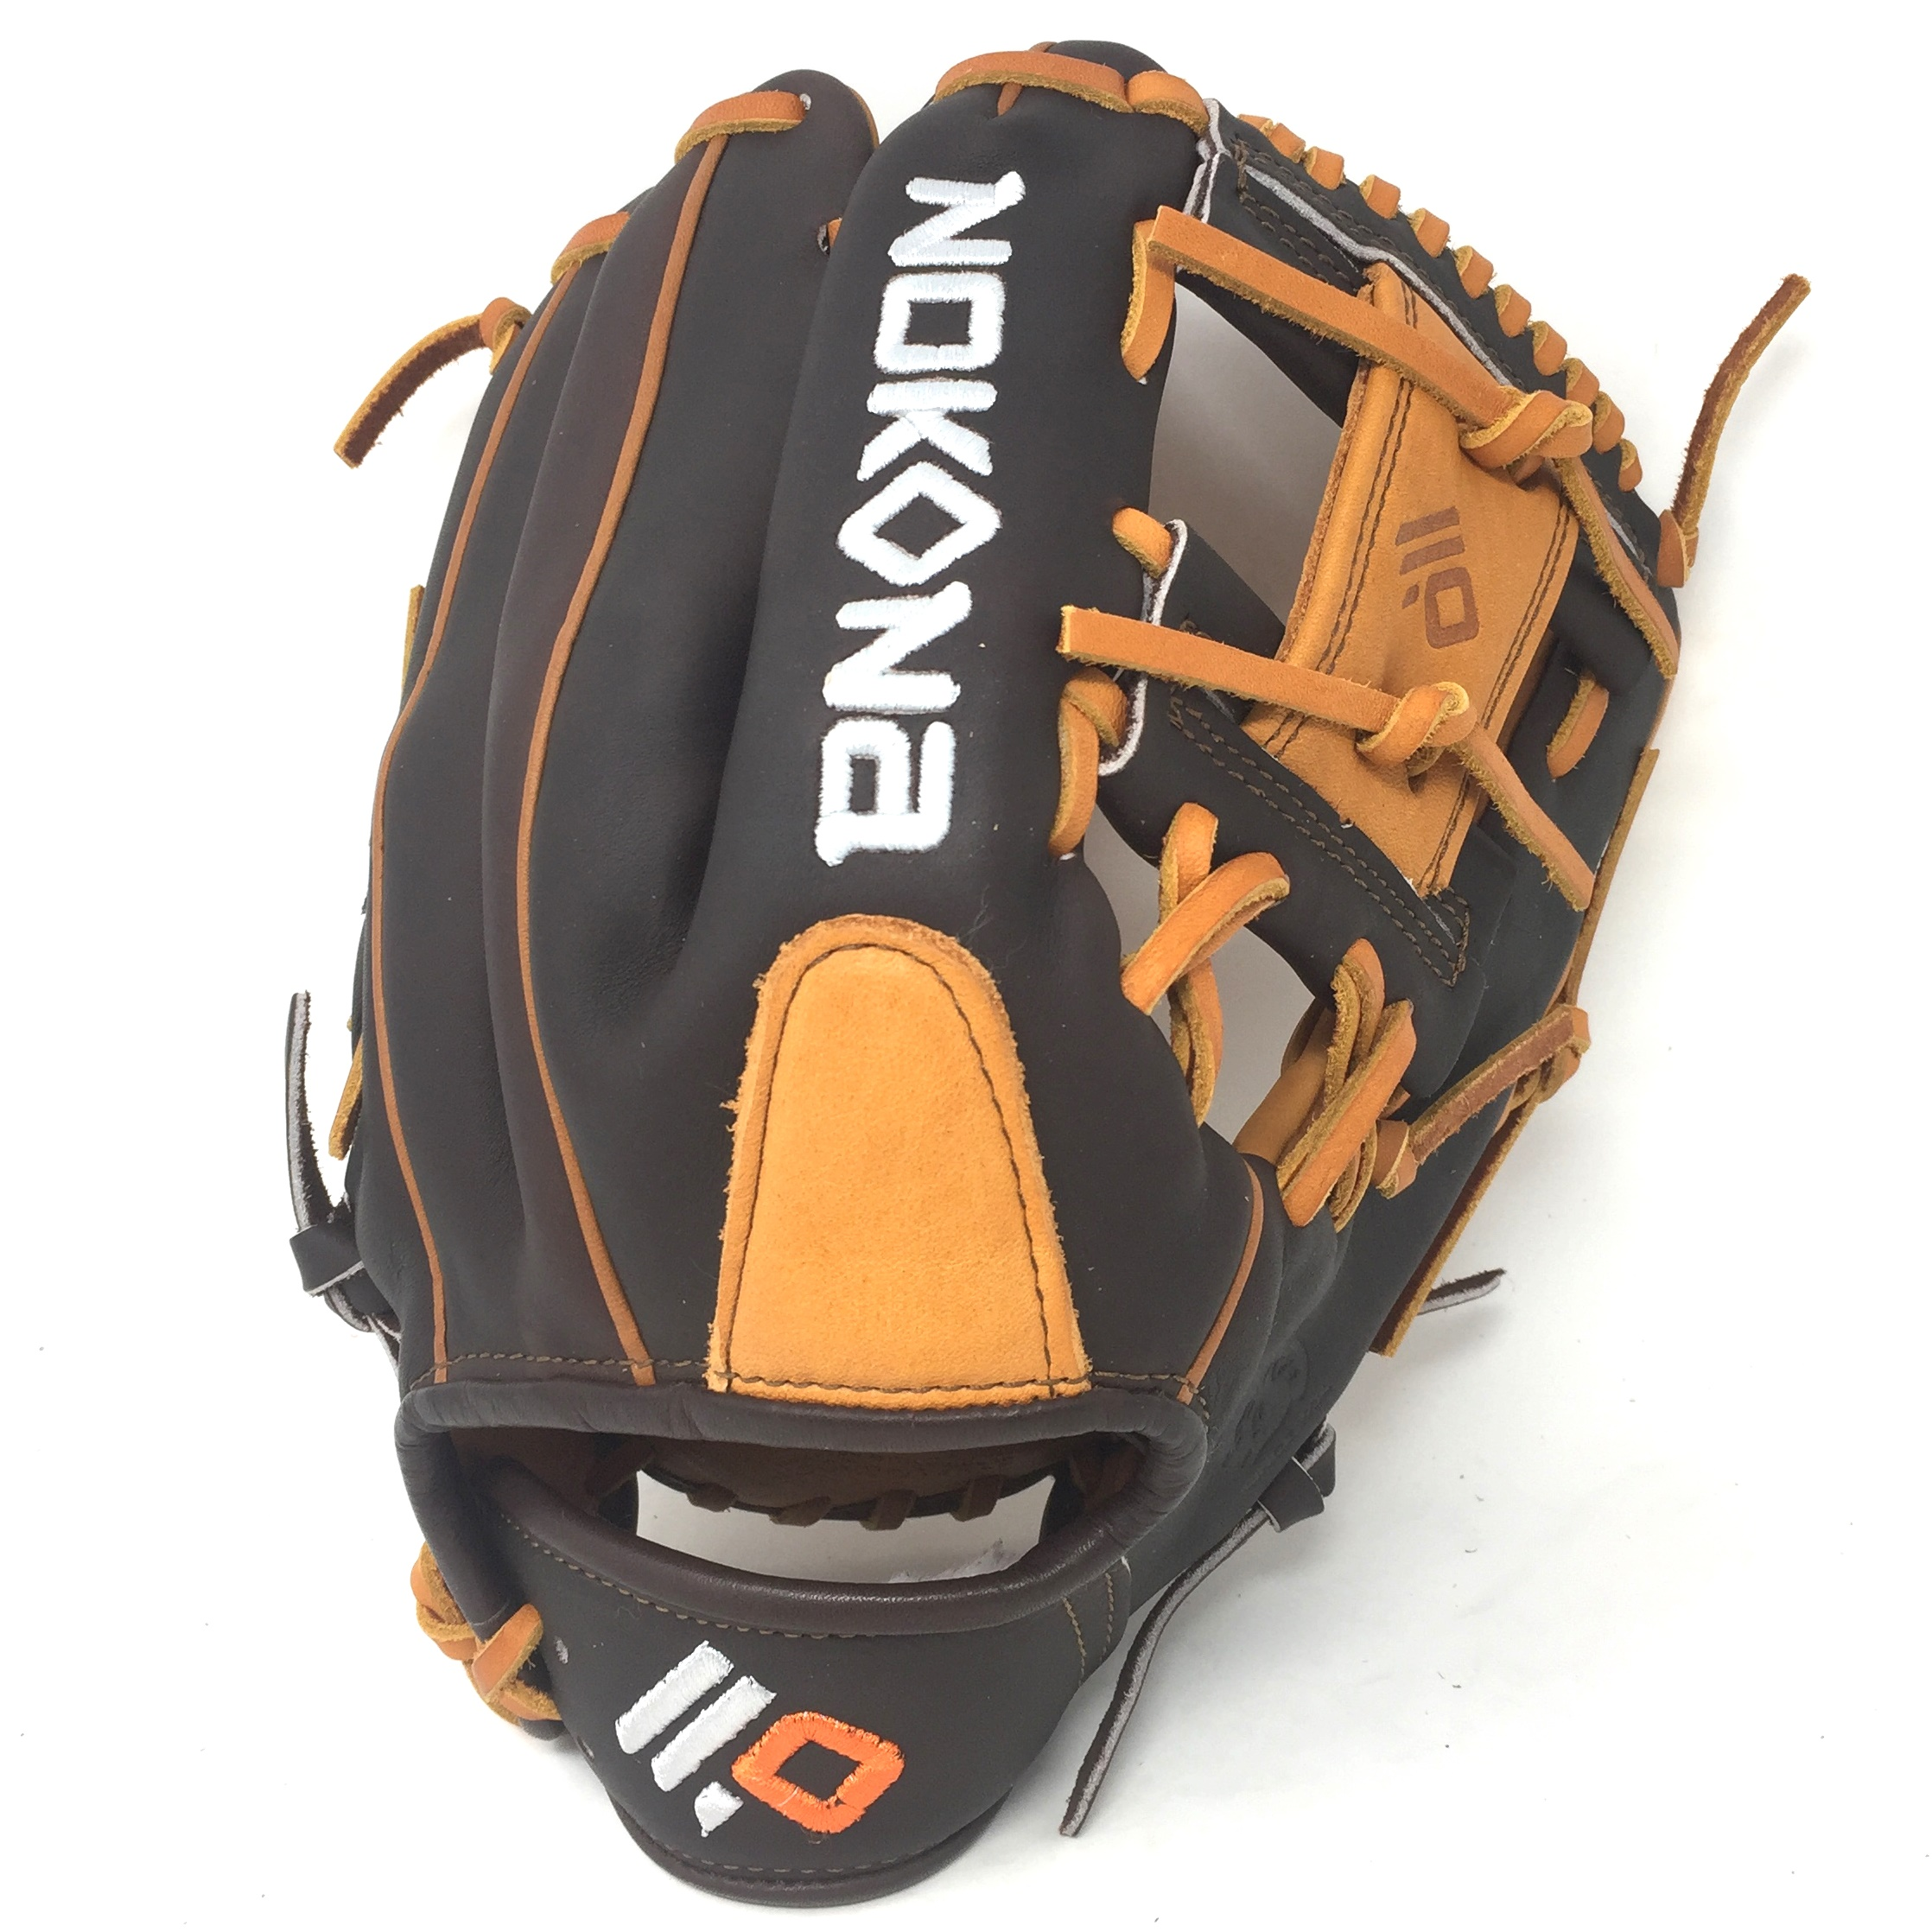 nokona-alpha-youth-2020-baseball-glove-11-25-right-hand-throw S-200I-2020-RightHandThrow  808808893820 The Alpha series is created with virtually no break in needed